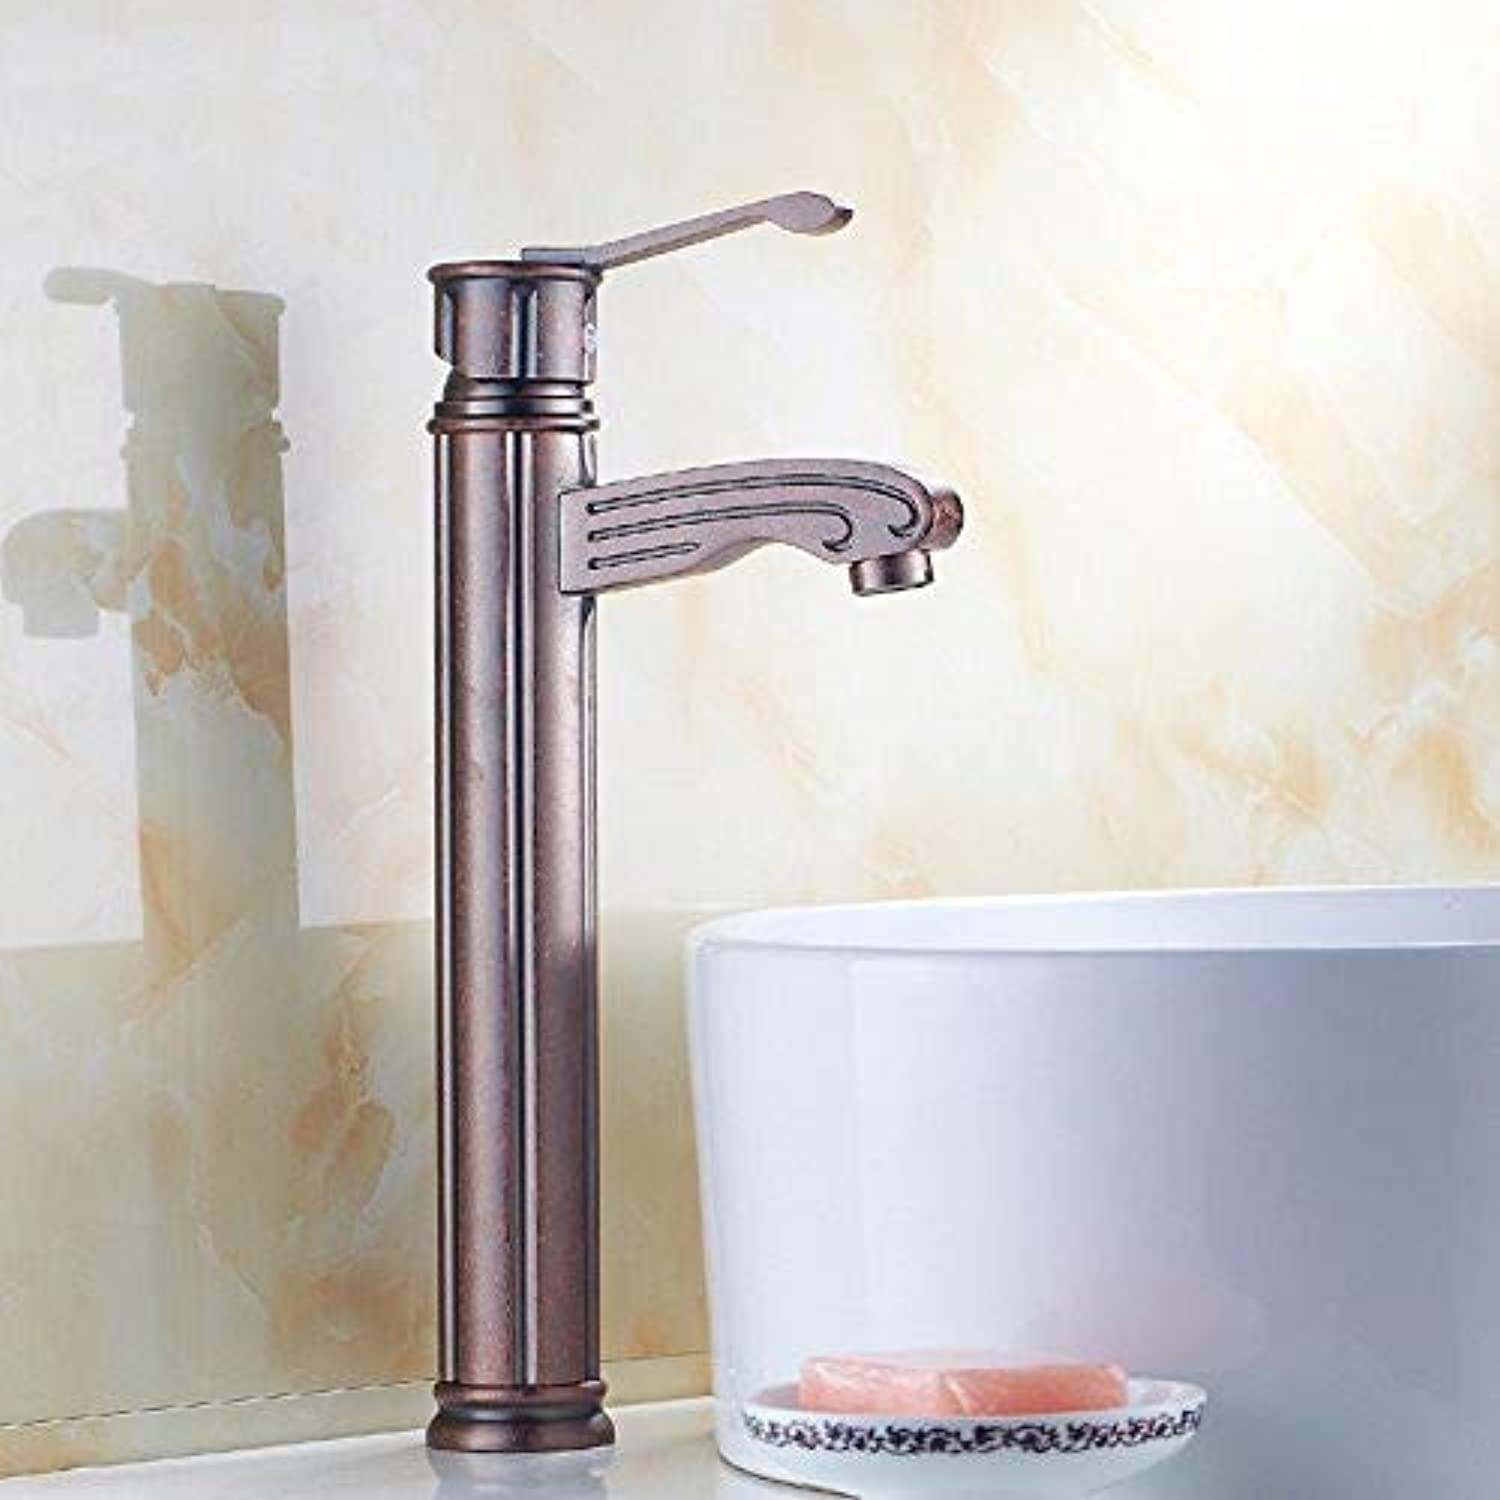 YEYEIG Taps Taps Water Tap Antique Kitchen Faucet Cold And Hot Bathroom Sink Faucet Basin Faucet